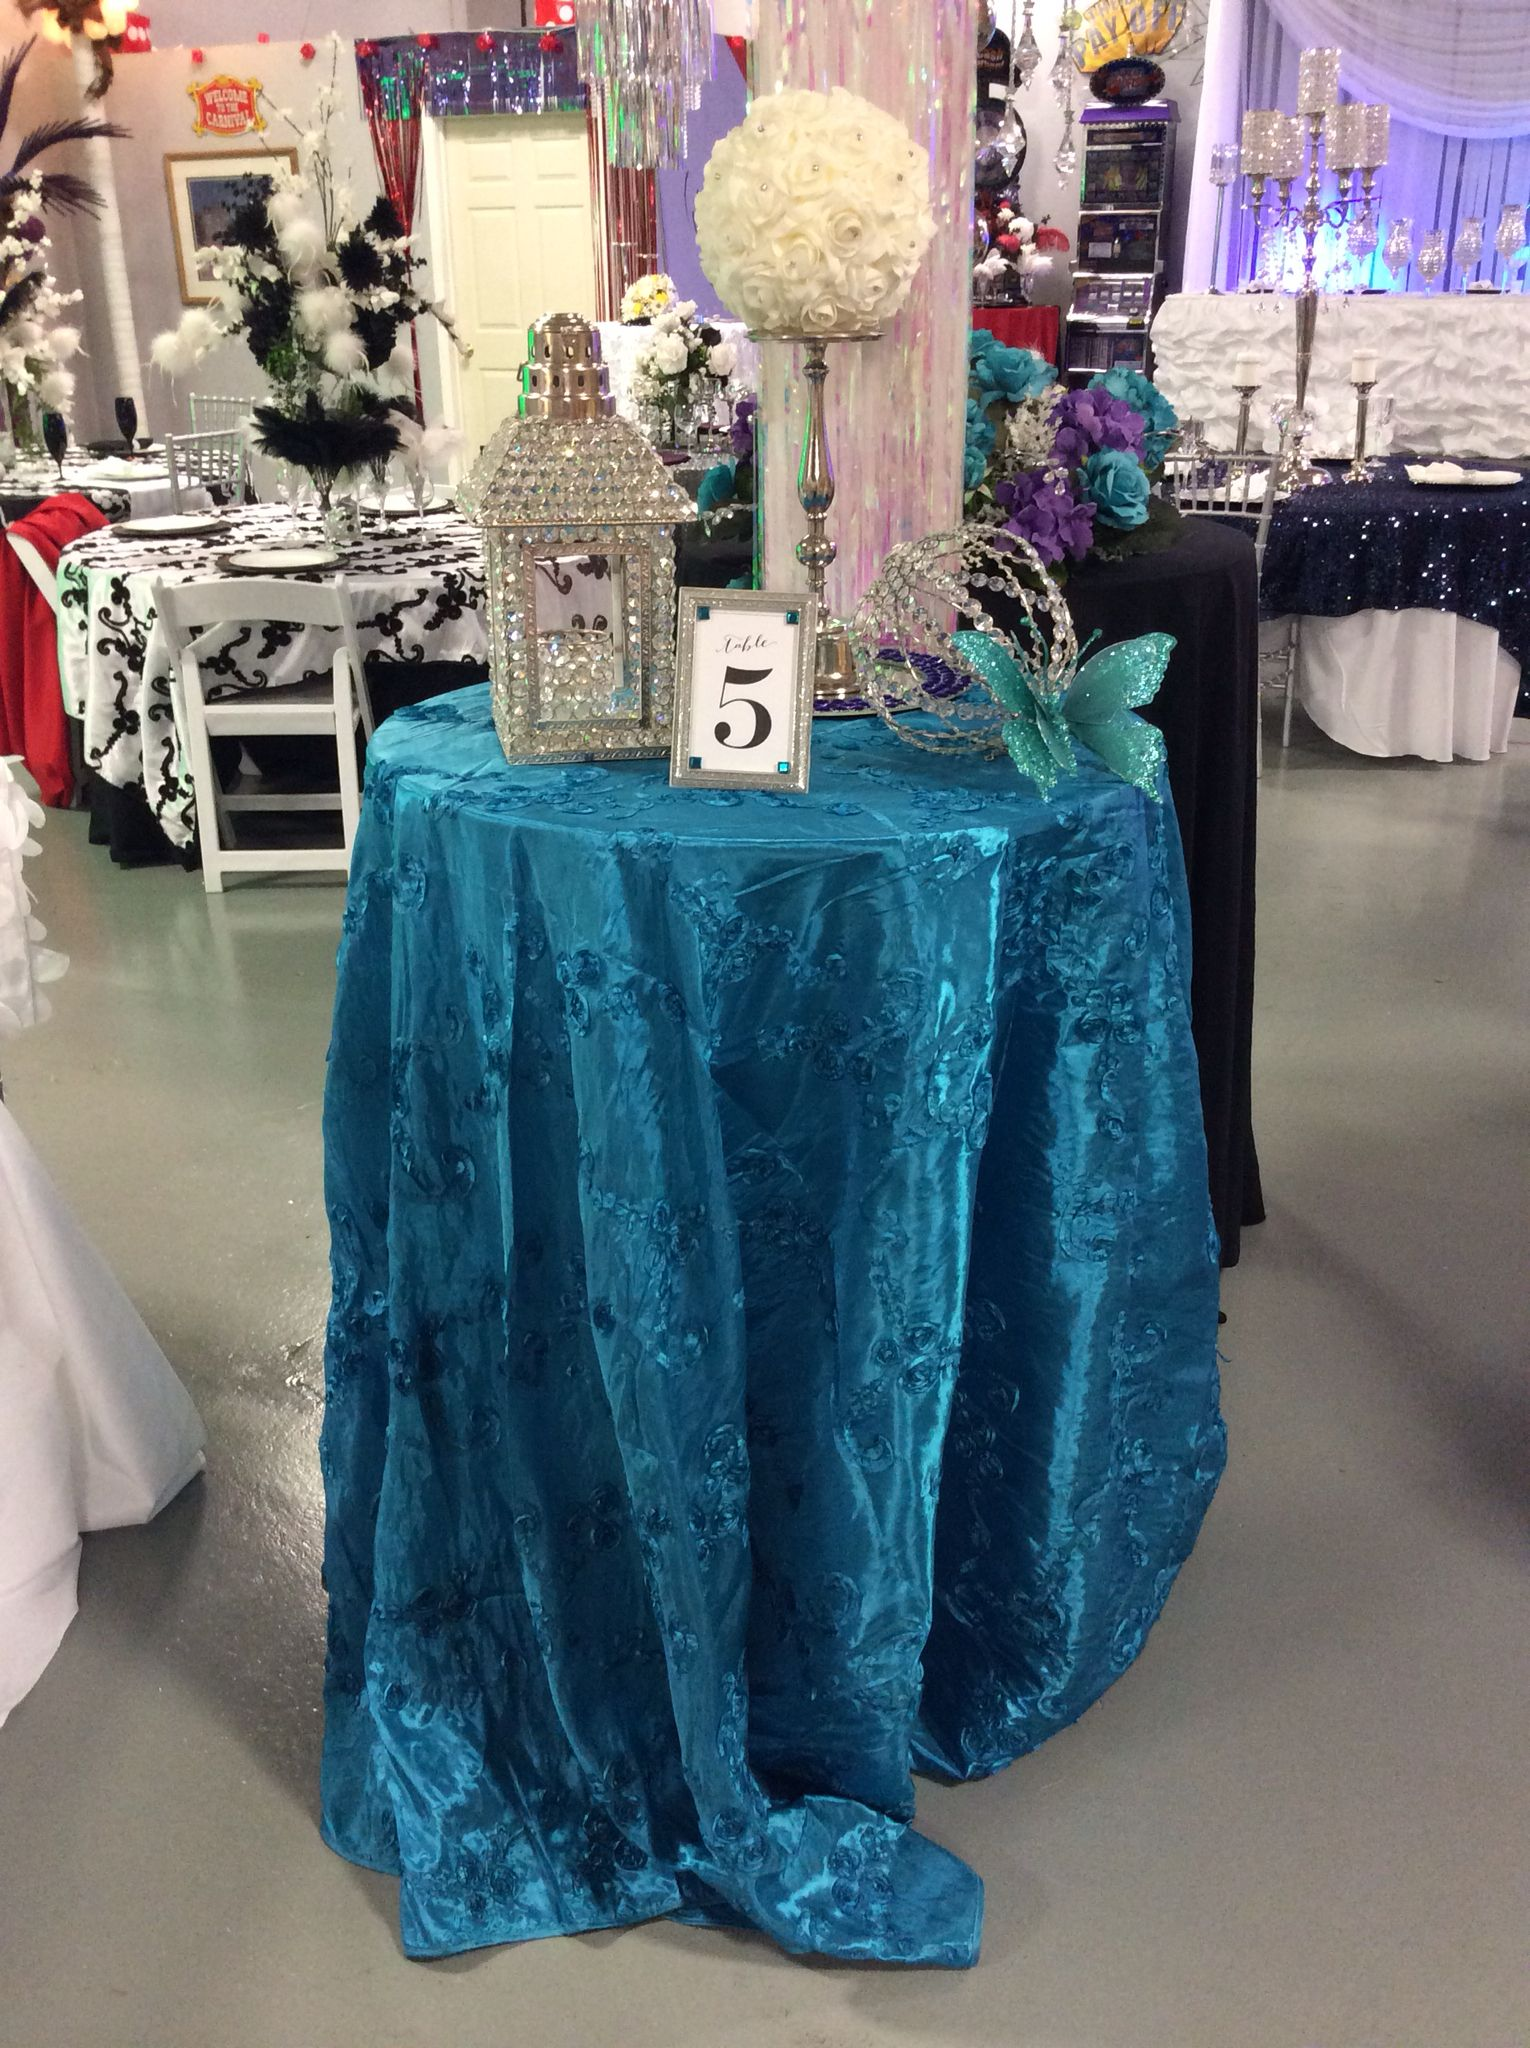 Turquoise Blue Bistro Table Linen Crystal Birdhouse Perfect Table For Cocktail Hour Visit Www Asplayzone C Wedding Rentals Bounce House Rentals Bounce House